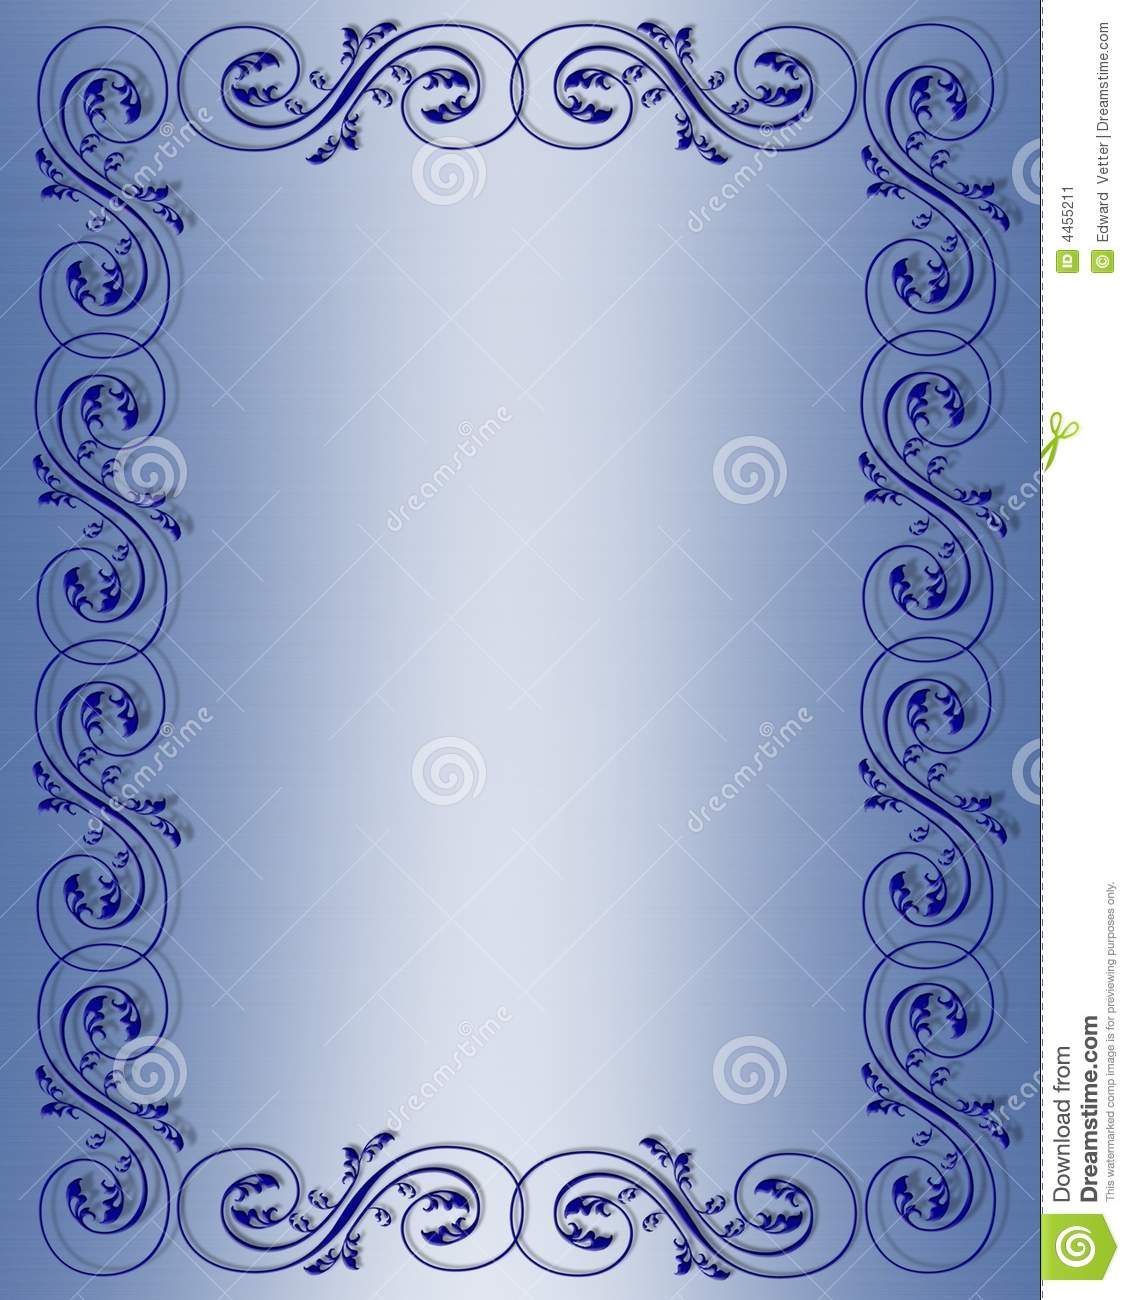 Blue Scroll Border Design stock illustration. Illustration of ...